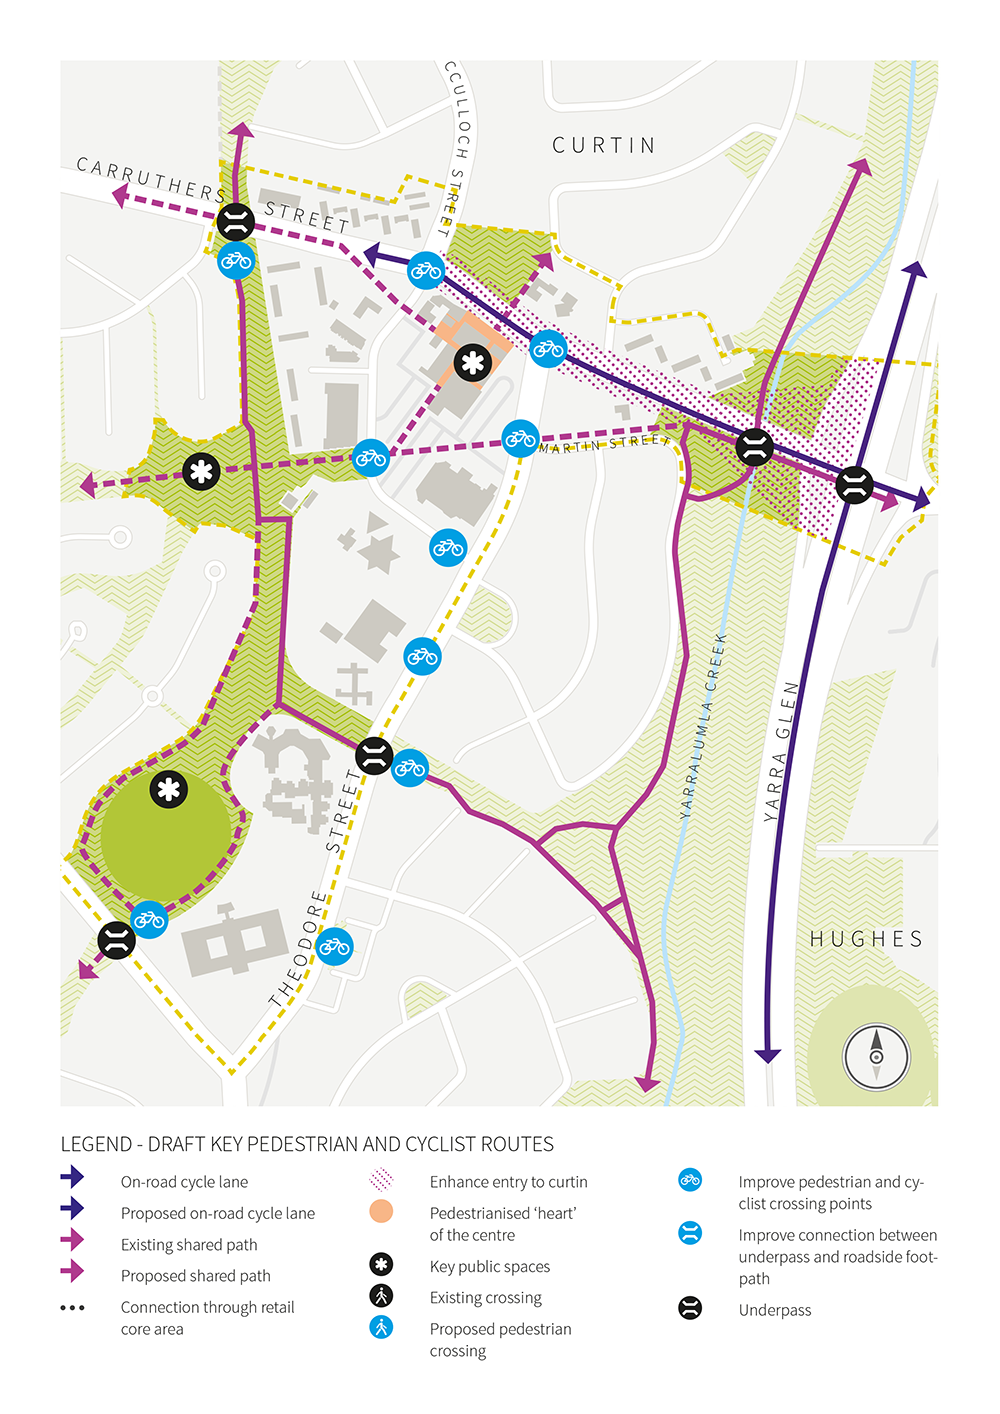 Previous Pedestrian and Cycle Routes